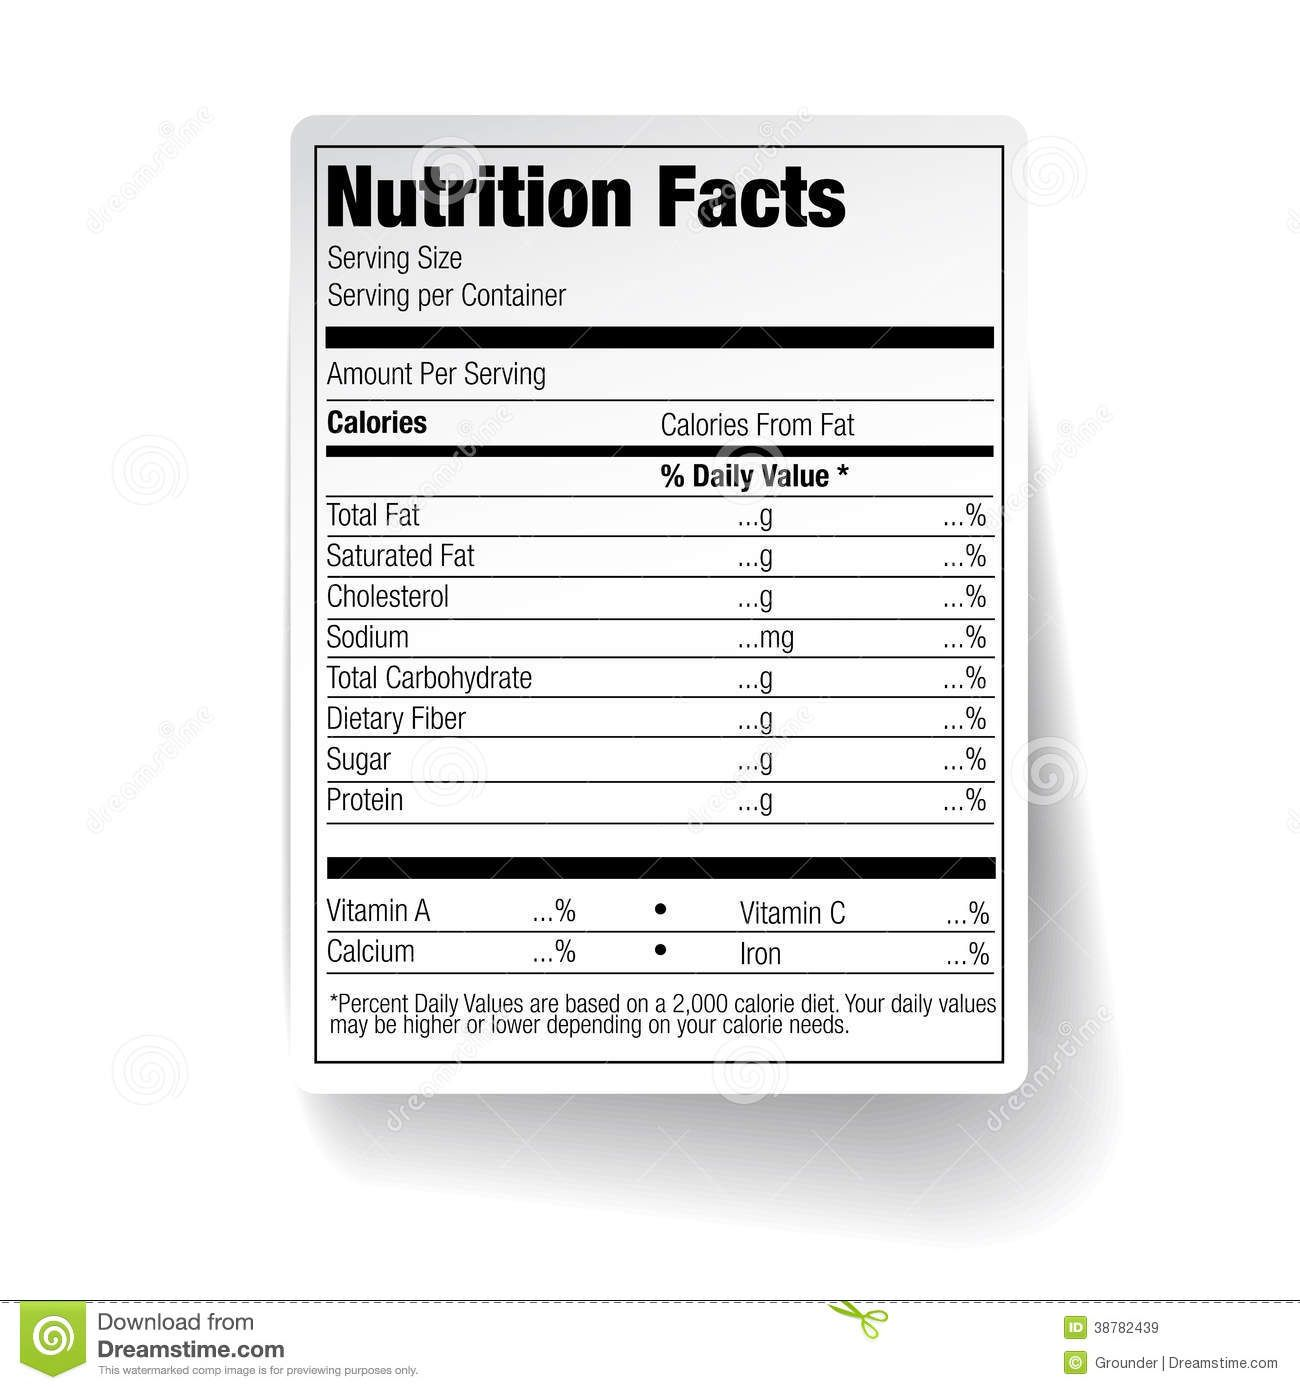 25 Images Of Empty Nutrition Label Template Vanscapital Intended For Blank Food Label Template P In 2020 Nutrition Facts Label Food Label Template Nutrition Labels